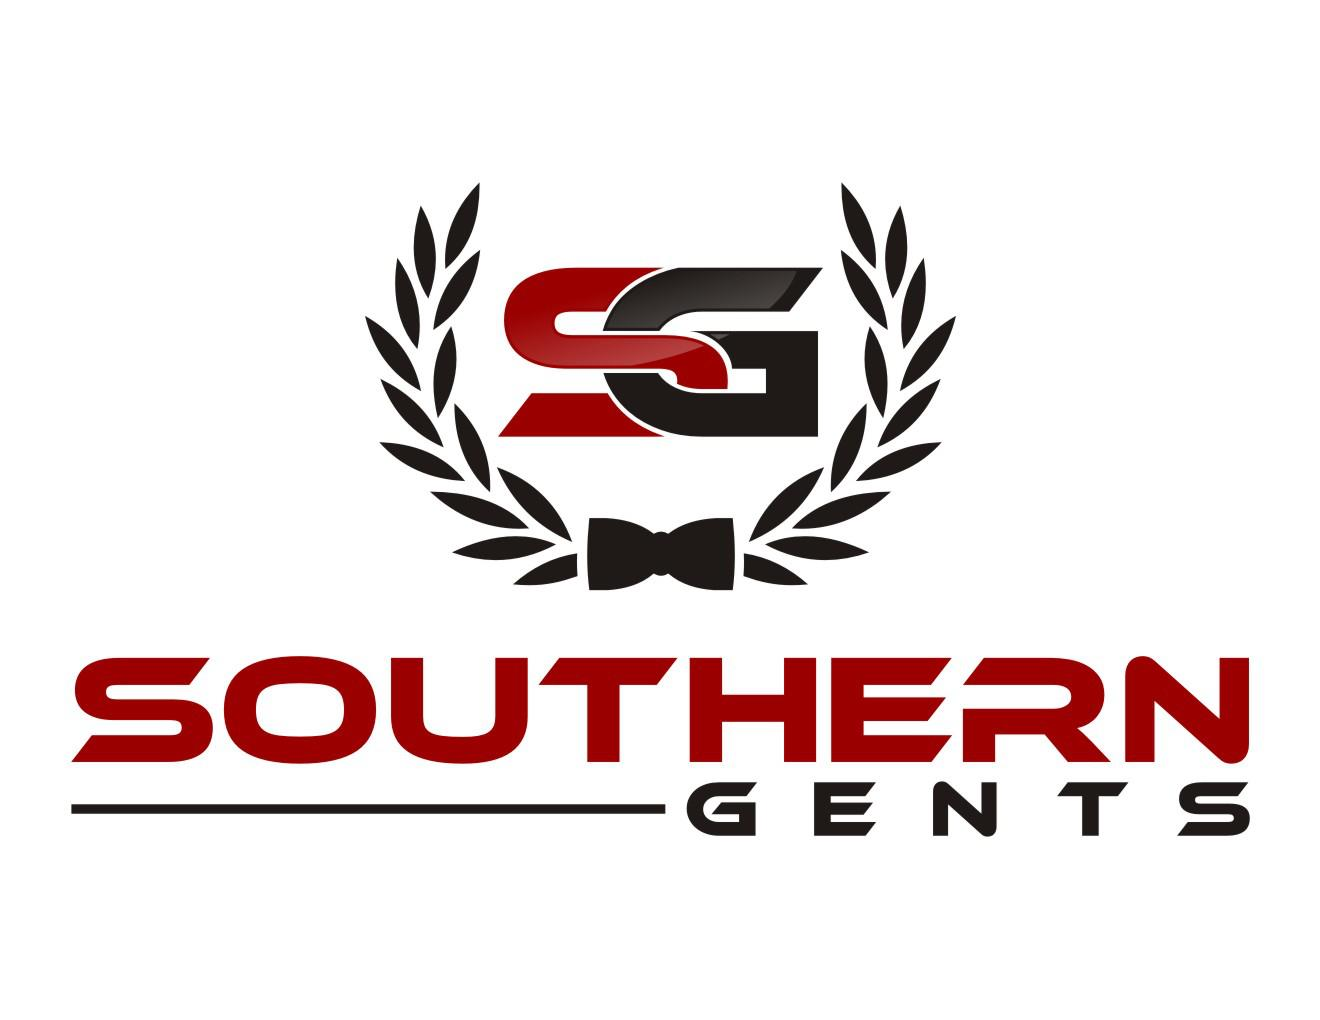 Southern Gents